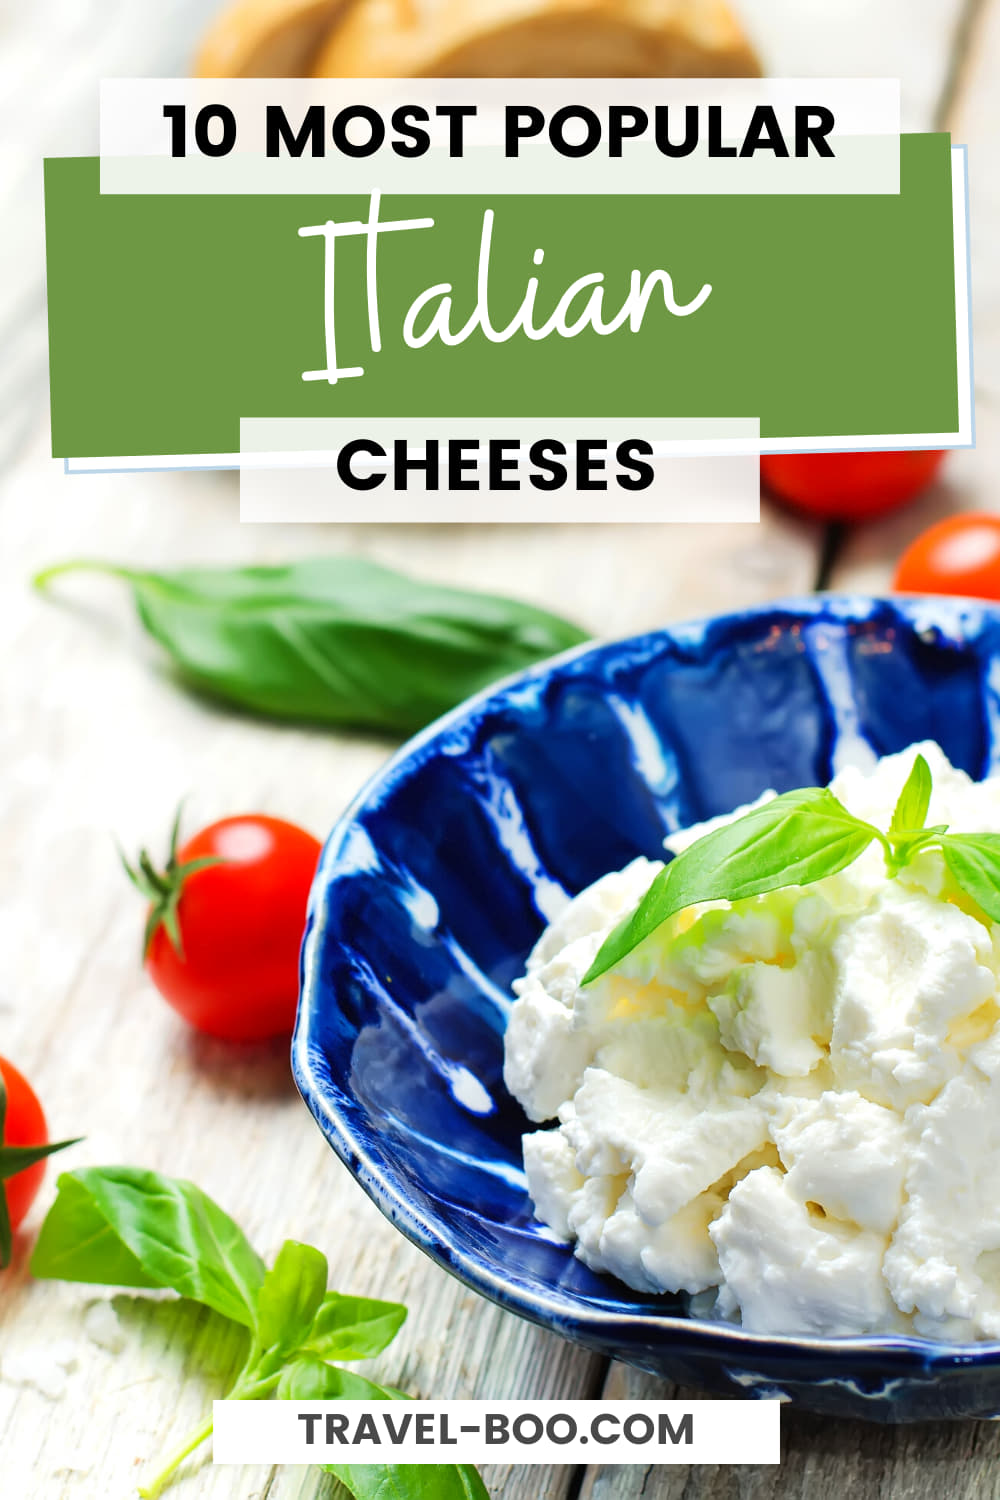 10 Of The Most Popular Italian Cheeses to Try out! Best Italian Cheeses, Cheese from Italy, Italian Cheese, Italian Food, Italian Cuisine, What to Eat in Italy, Cheeses in Italy!